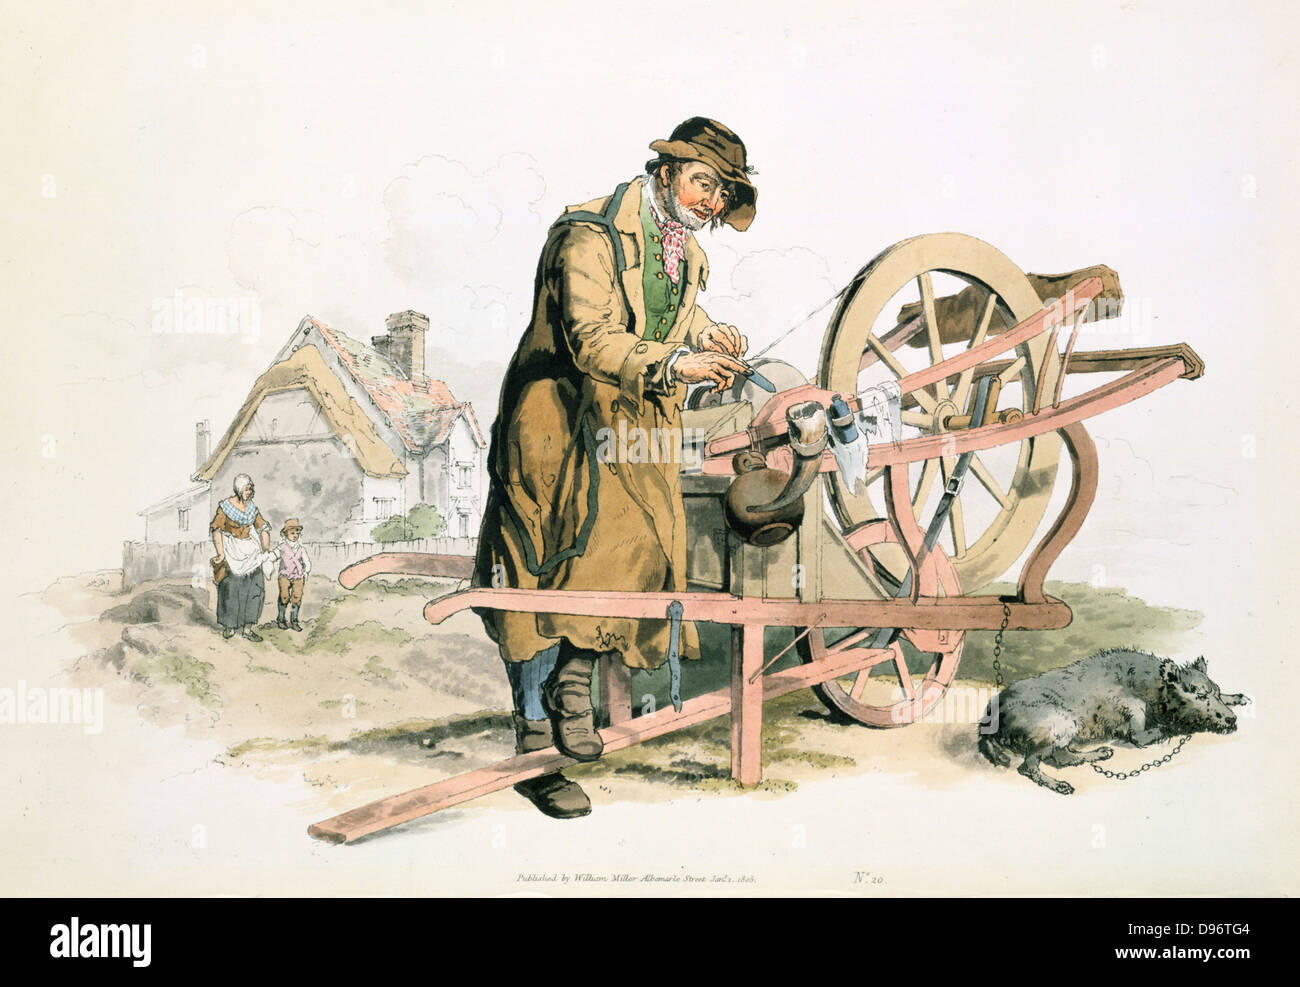 Itinerant knife grinder using treadle to turn his grindstone. His pet dog lies beside the barrow. From William Henry - Stock Image